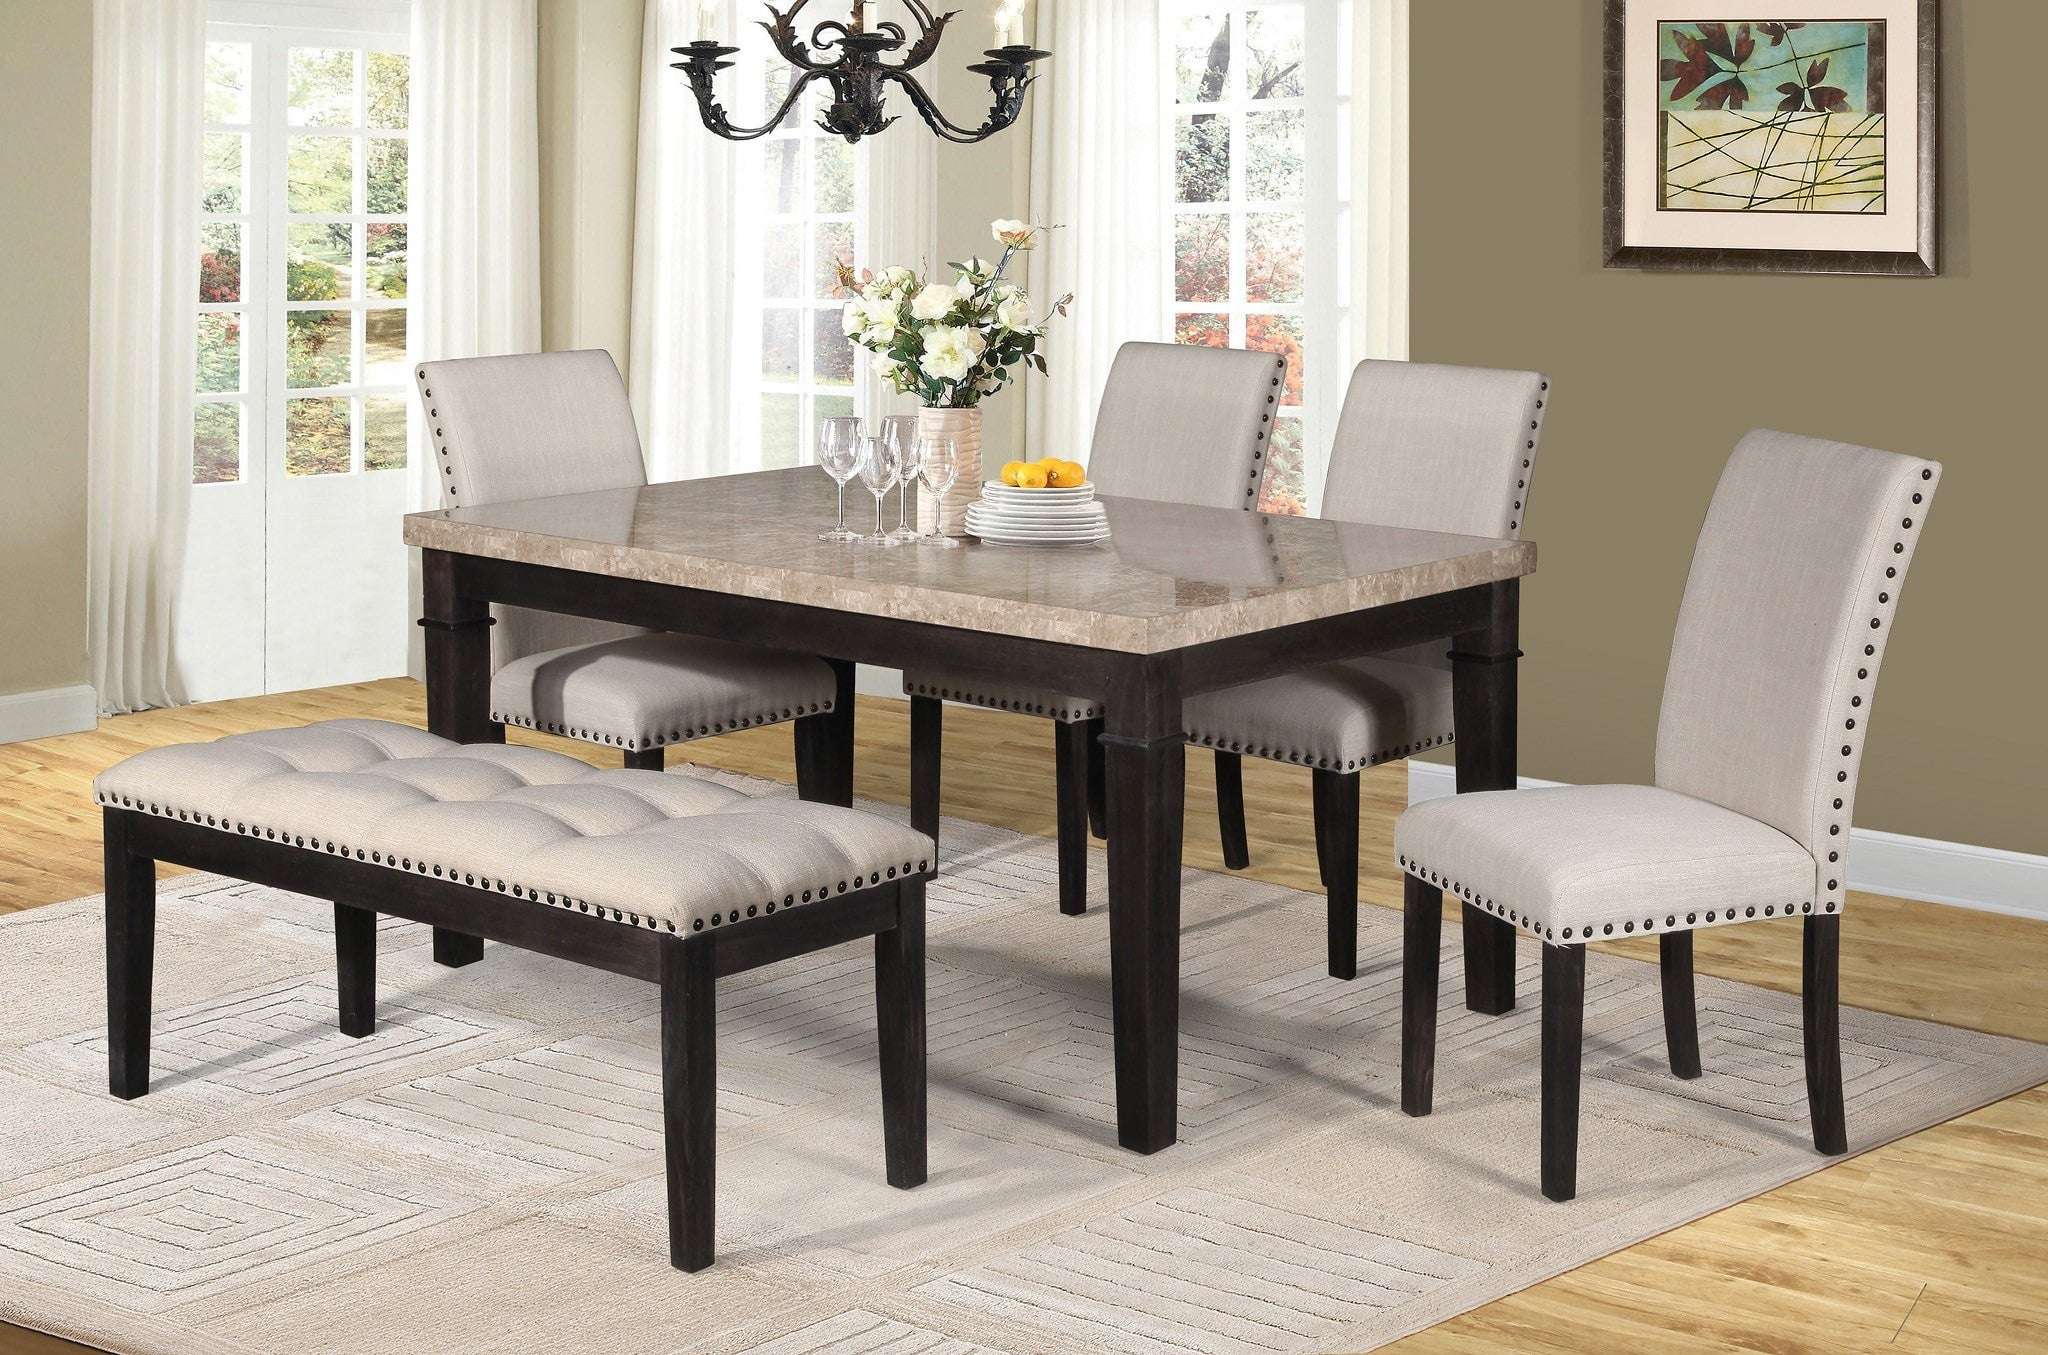 Sutton Dining Table Set; Table + 4 Chairs + Bench (6 PCS. SET)